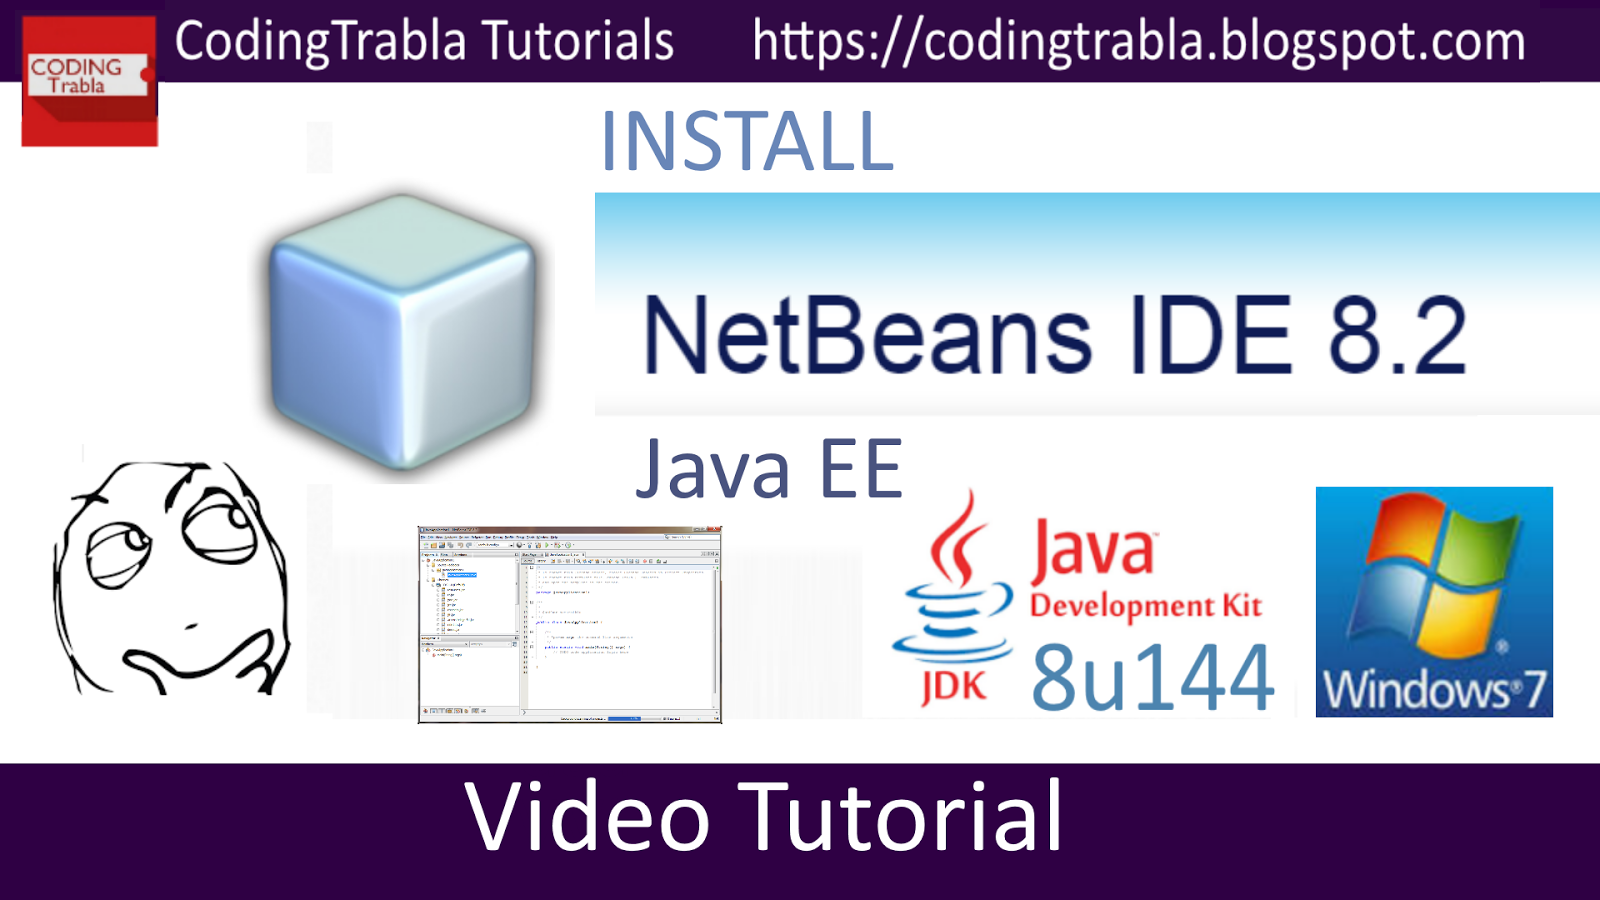 Codingtrabla install netbeans 82 2017 on windows 7 free netbeans is a software development platform written in java the netbeans platform allows applications to be developed from a set of modular software baditri Gallery